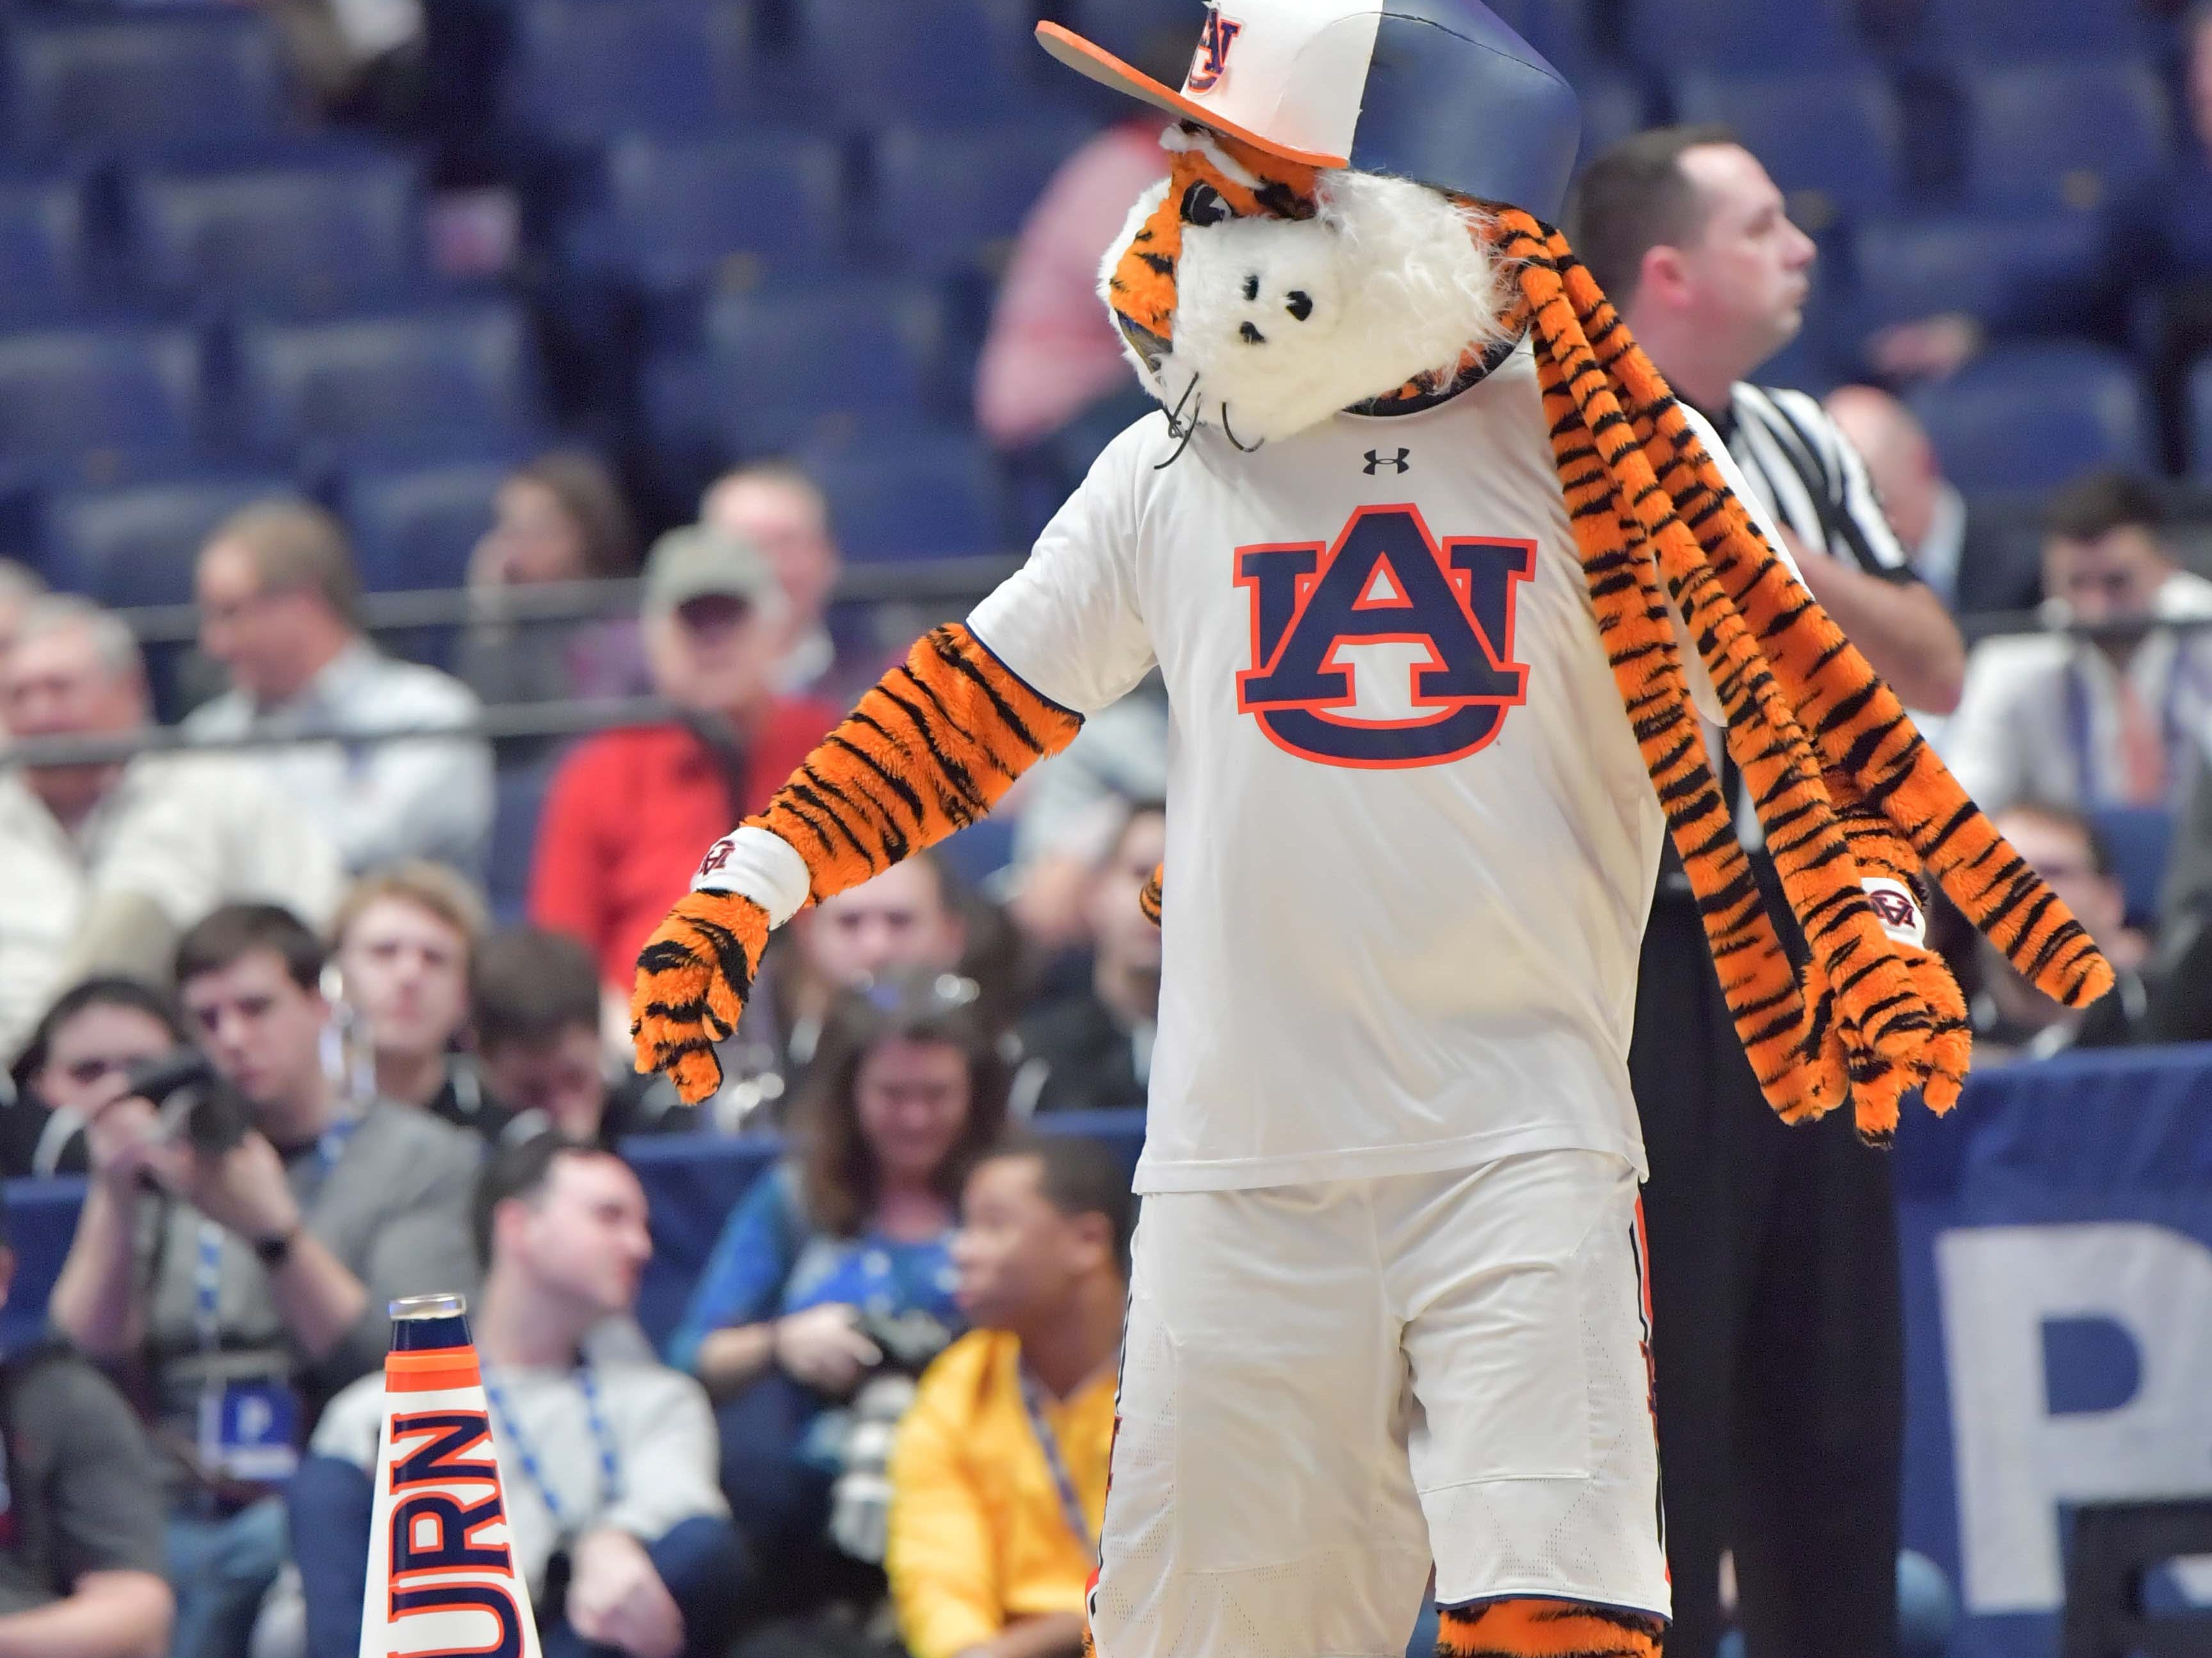 Mar 14, 2019; Nashville, TN, USA; Auburn Tigers mascot entertains fans in the SEC conference tournament Auburn Tigers mascot entertains fans at Bridgestone Arena. Mandatory Credit: Jim Brown-USA TODAY Sports